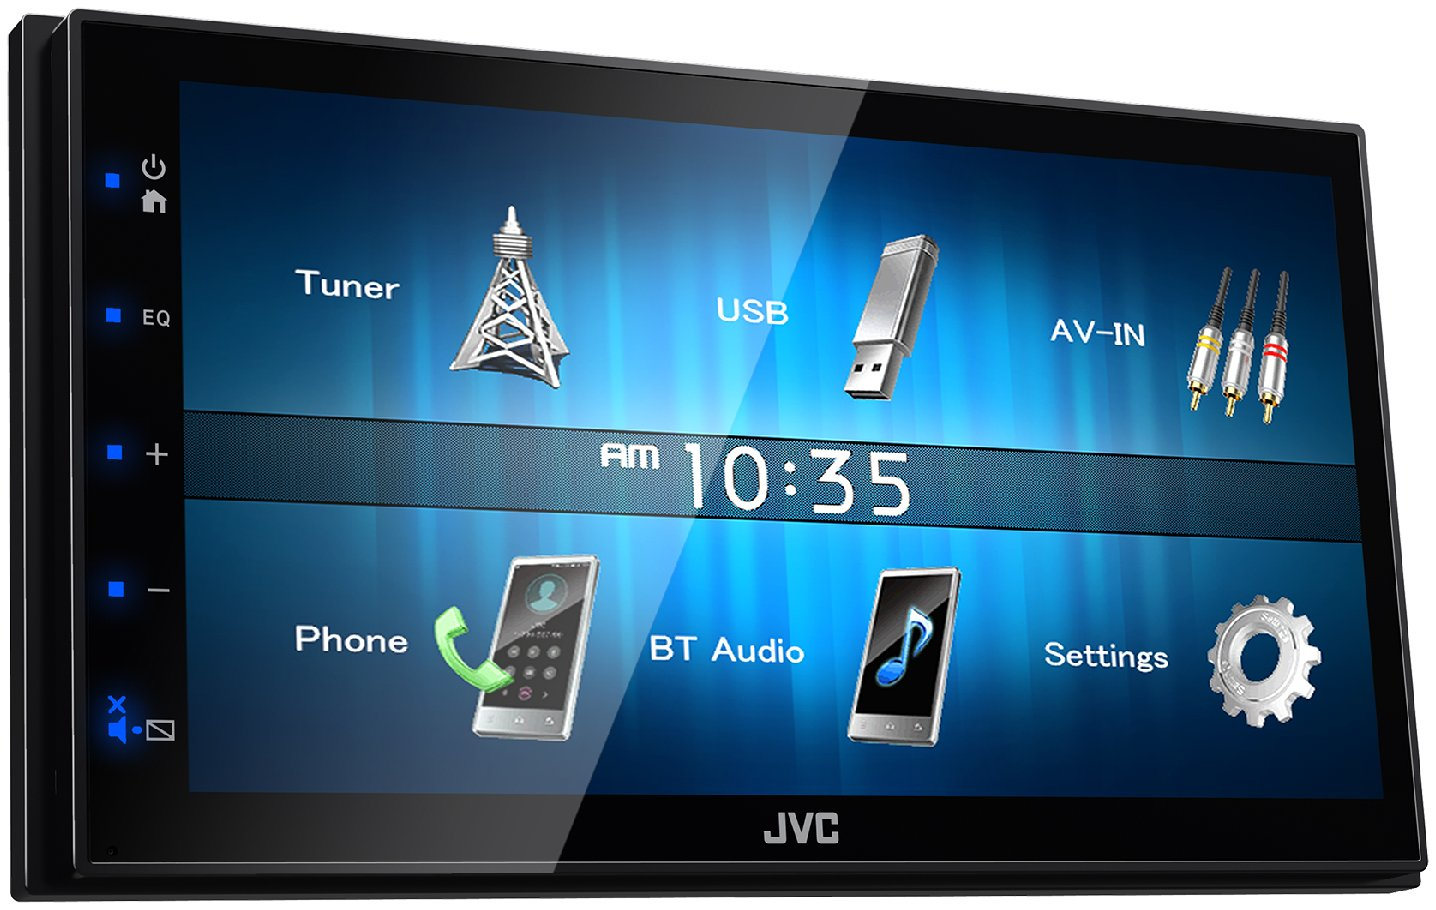 JVC-KW-M24BT-WVGA-Digital-Media-Receiver-mit-Bluetoothmodul-173-cm-schwarz